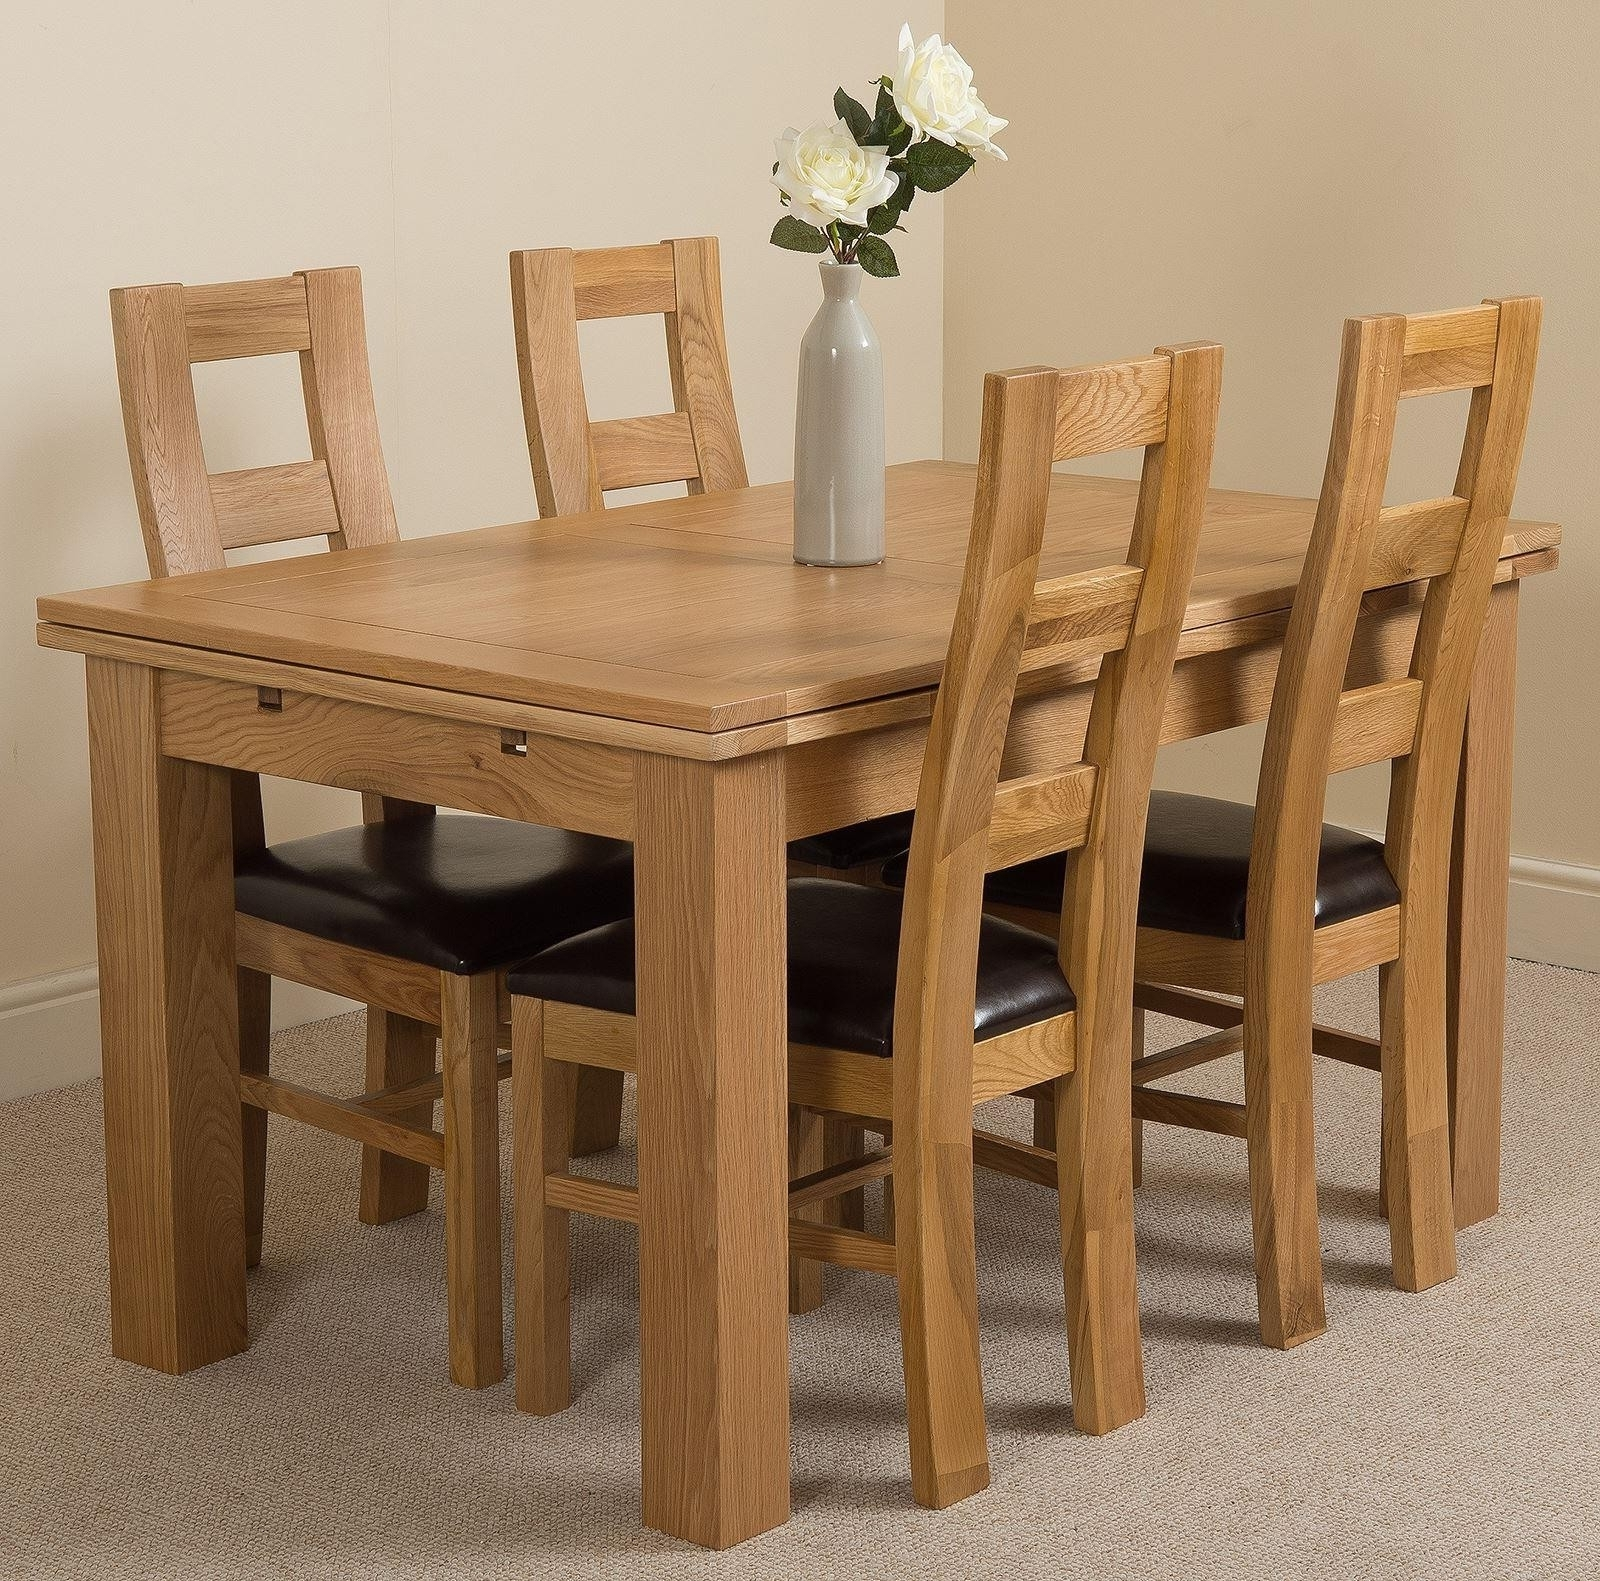 Oak Dining Tables And 4 Chairs Intended For Well Liked Richmond Medium Dining Set 4 Yale Chairs (View 2 of 25)